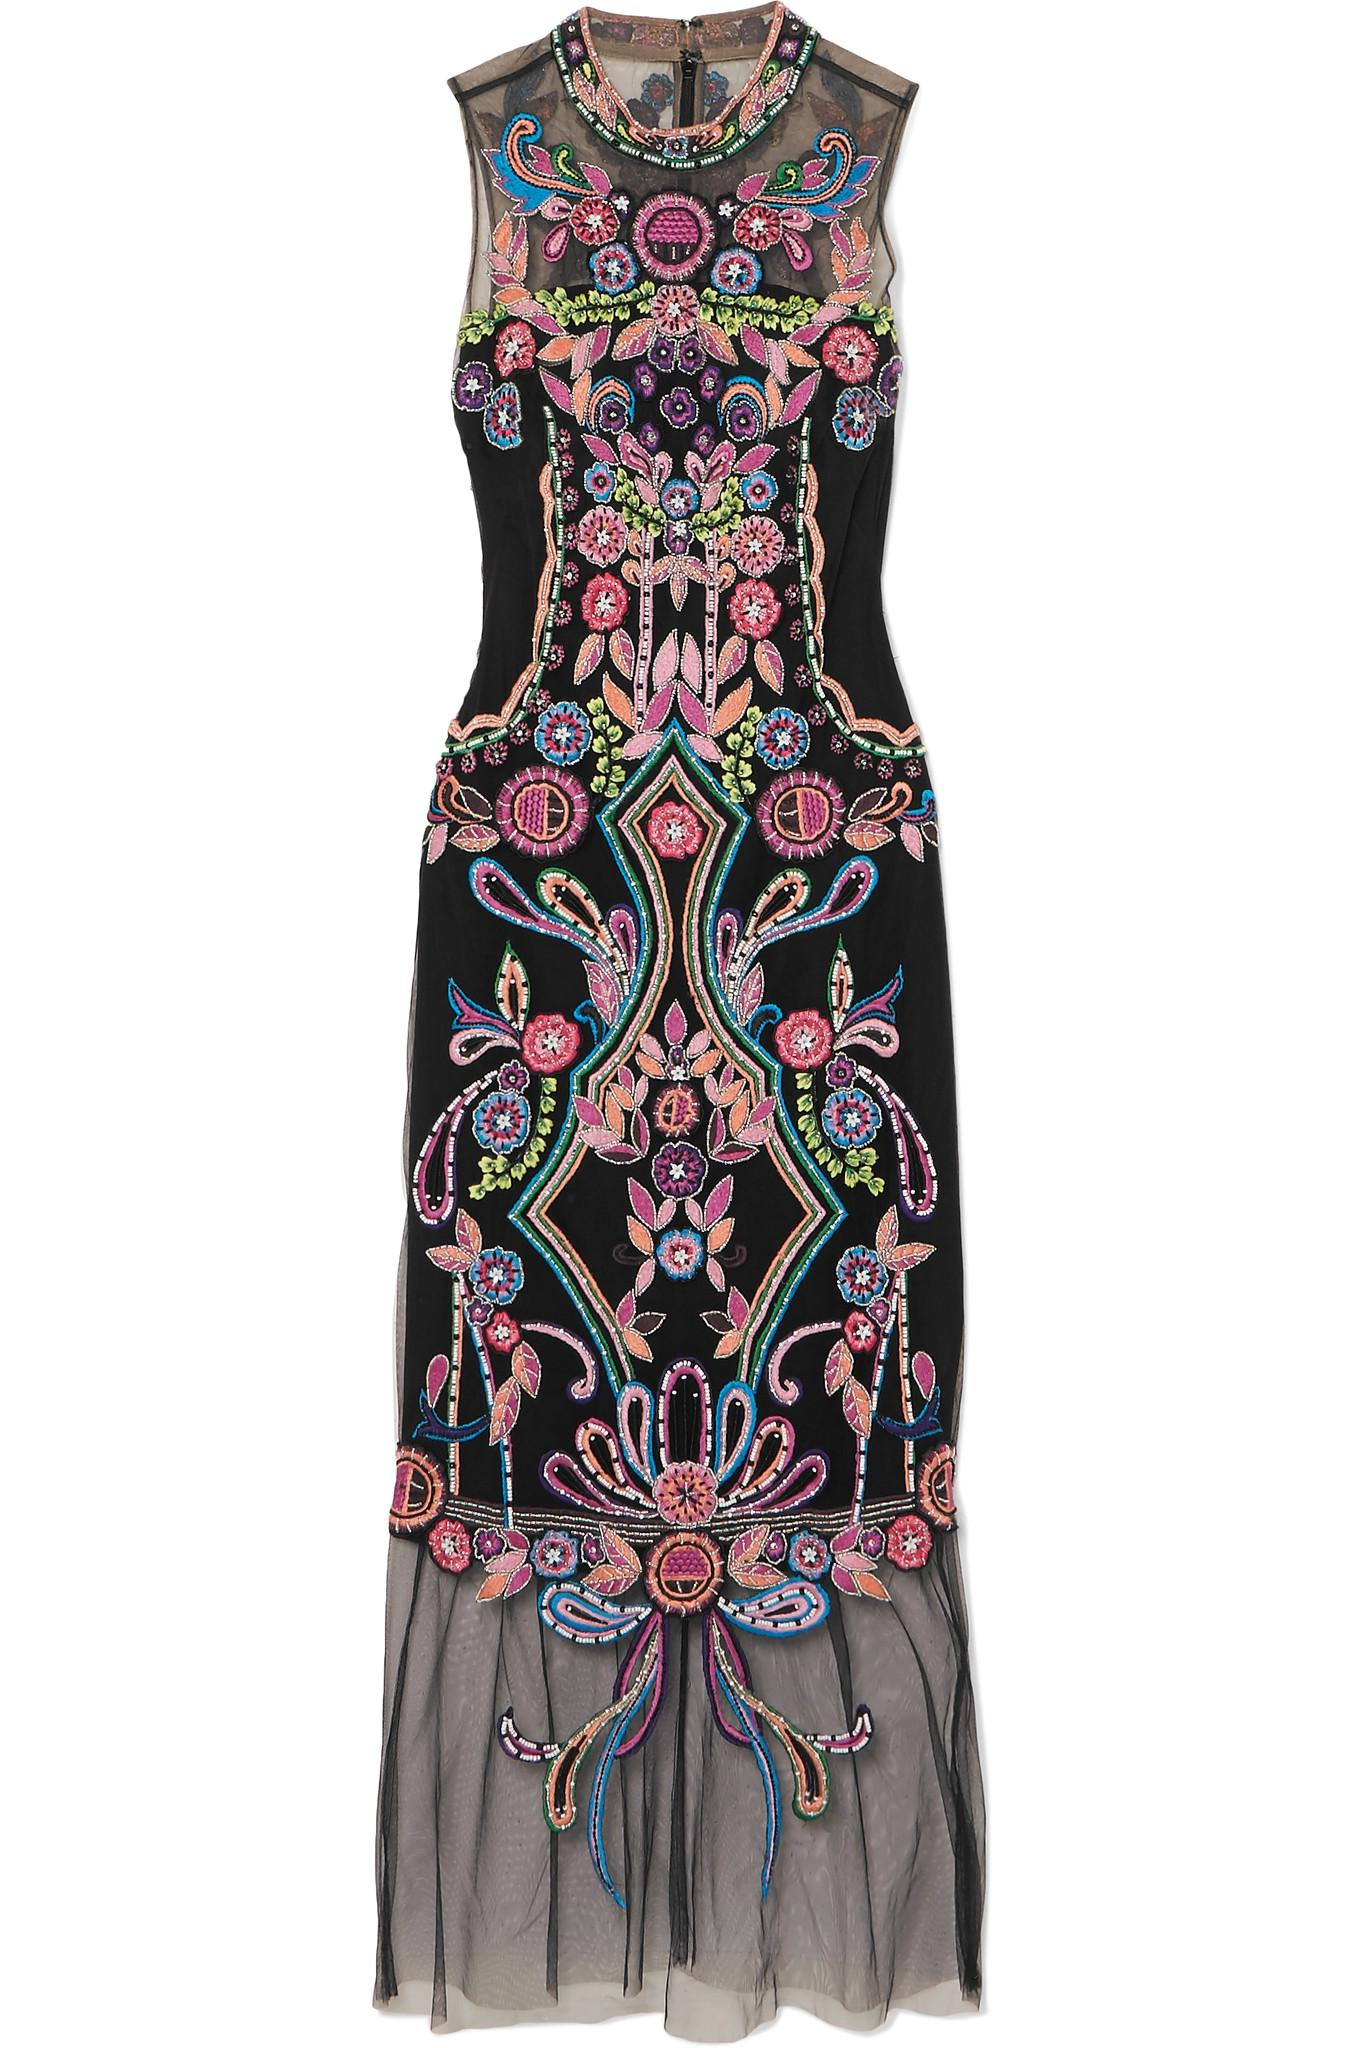 3408178e13f1d Lyst - Marchesa notte Beaded Embroidered Tulle Midi Dress in Black